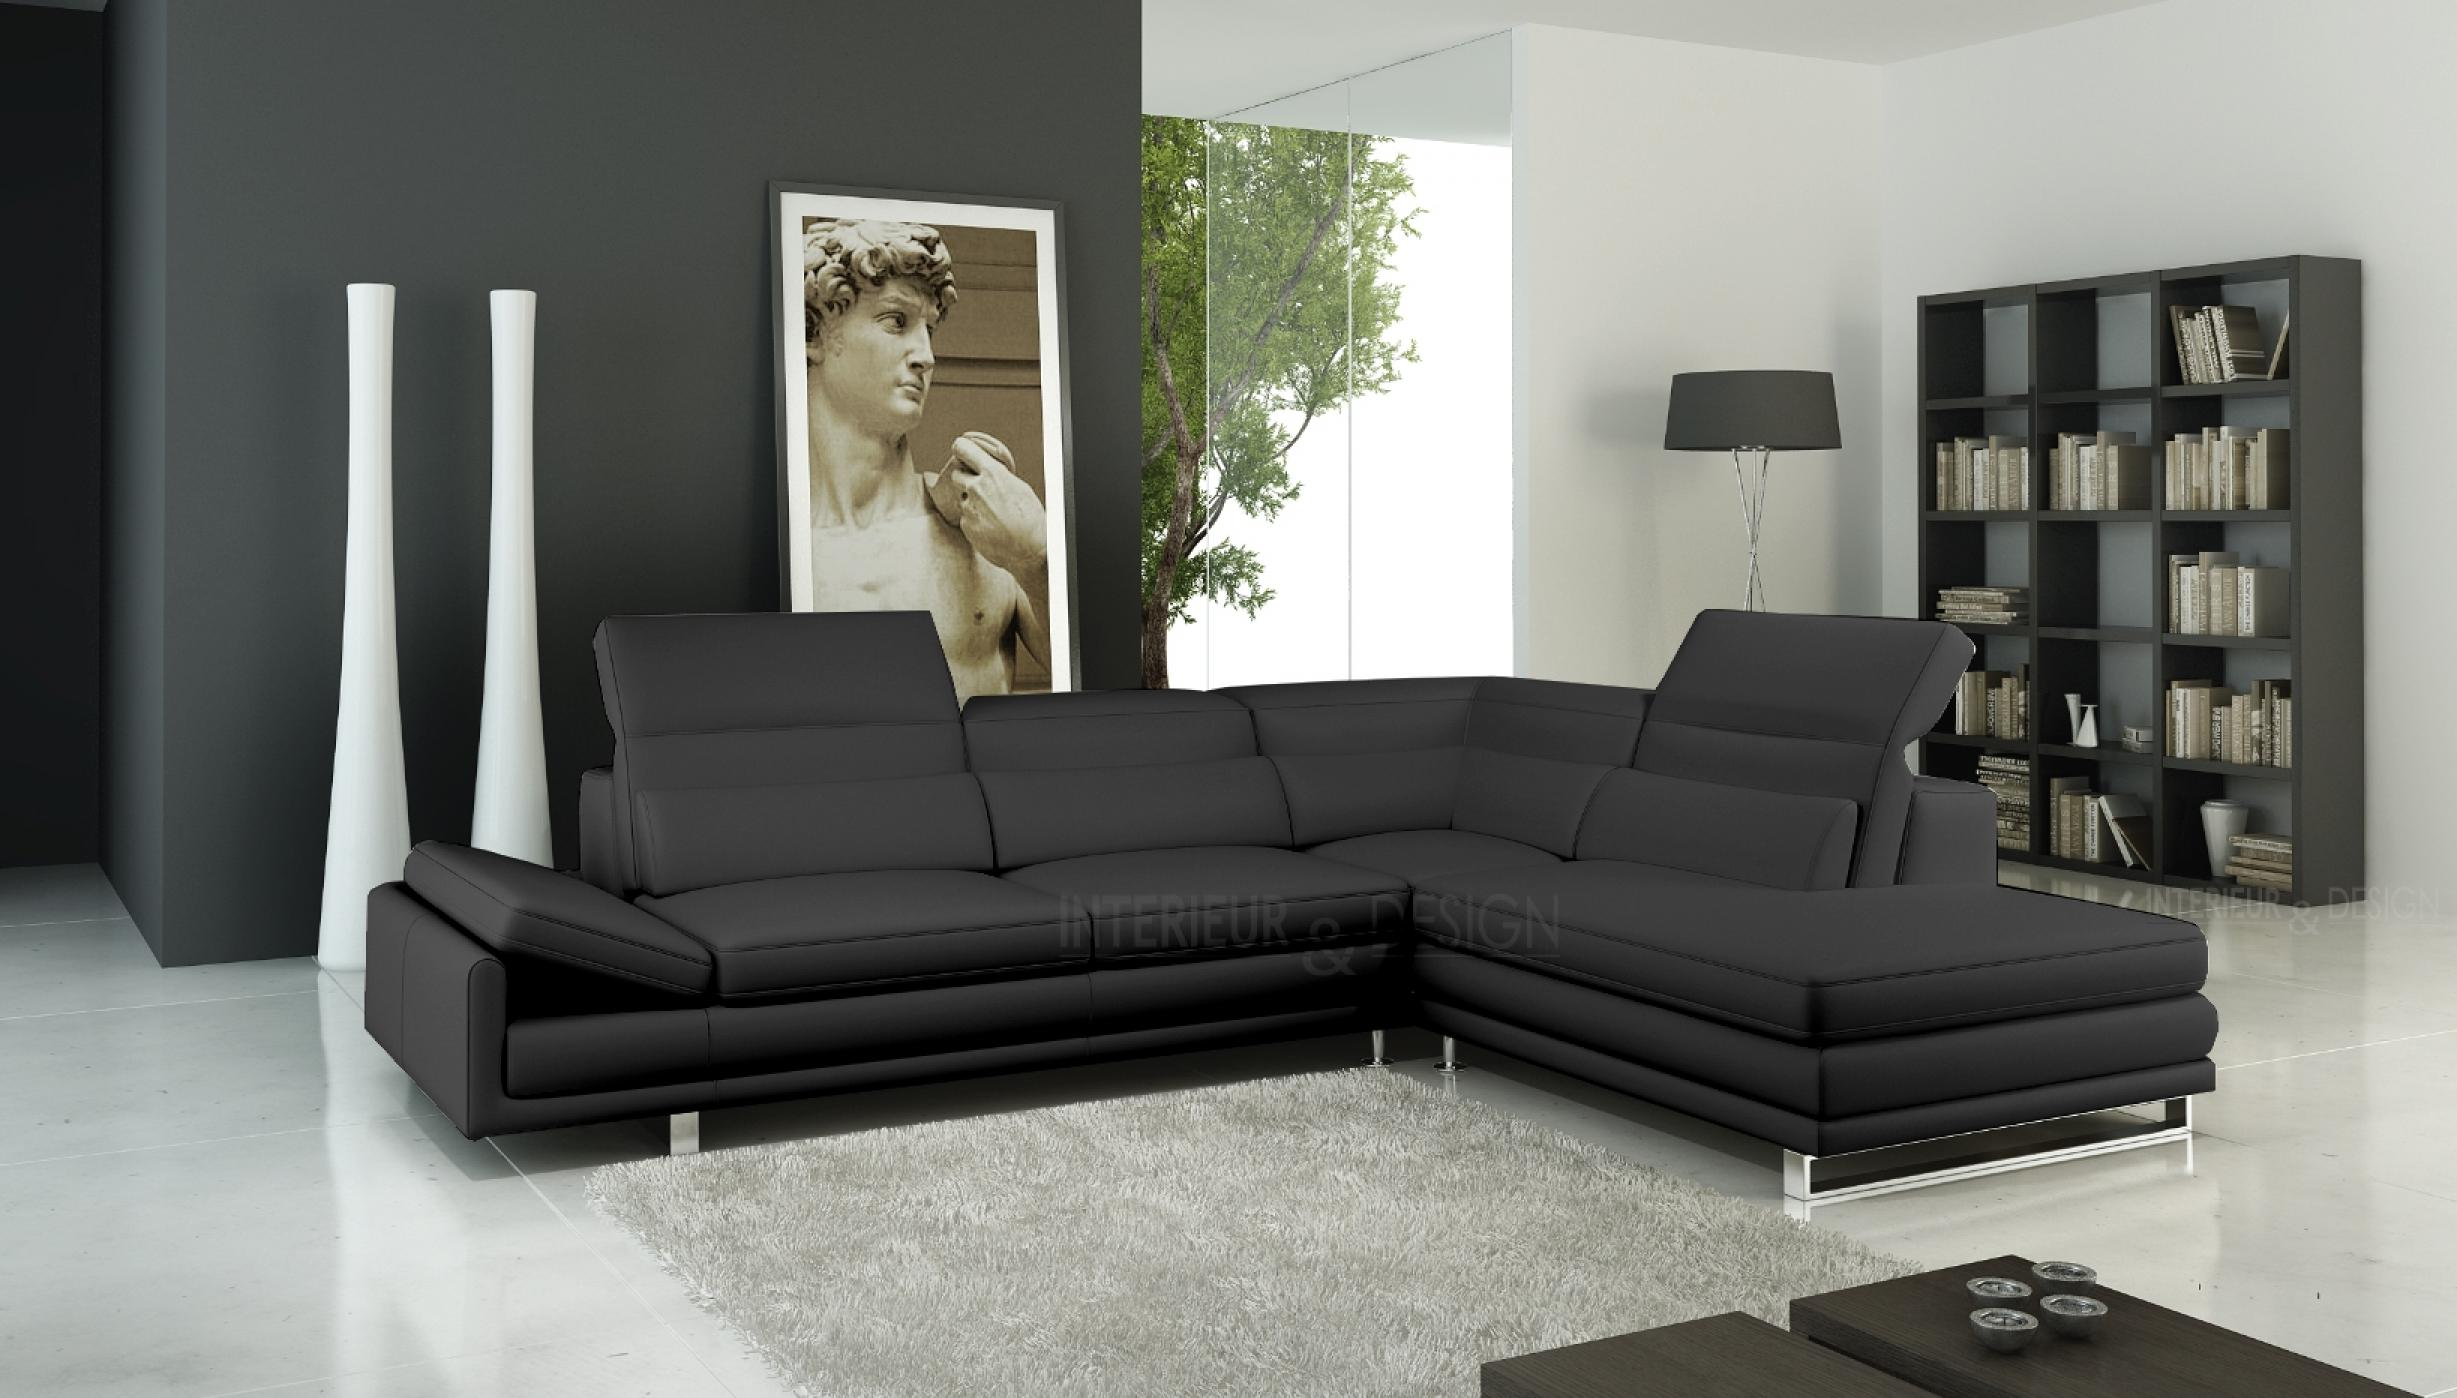 photos canap d 39 angle cuir design italien. Black Bedroom Furniture Sets. Home Design Ideas